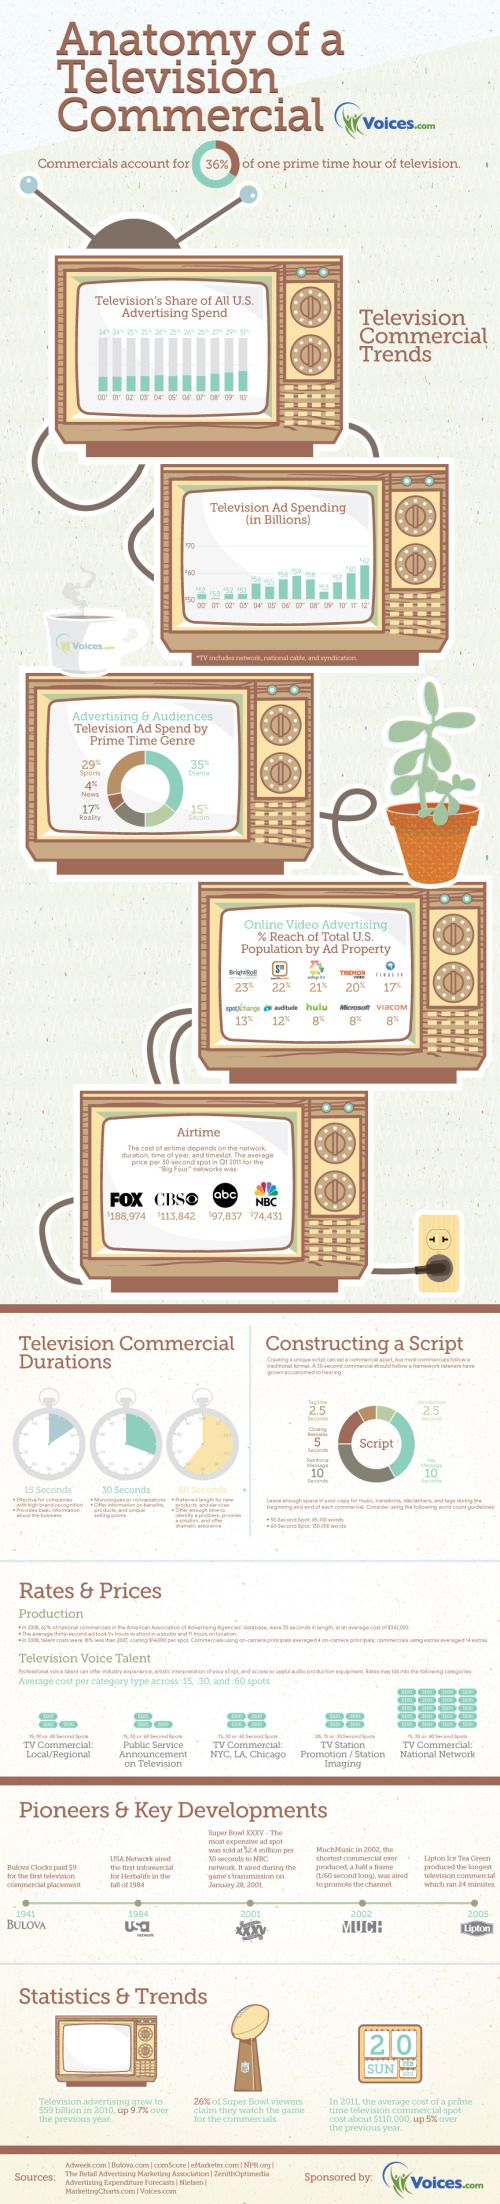 Anatomy of a Television Commercial #infographic #commercial